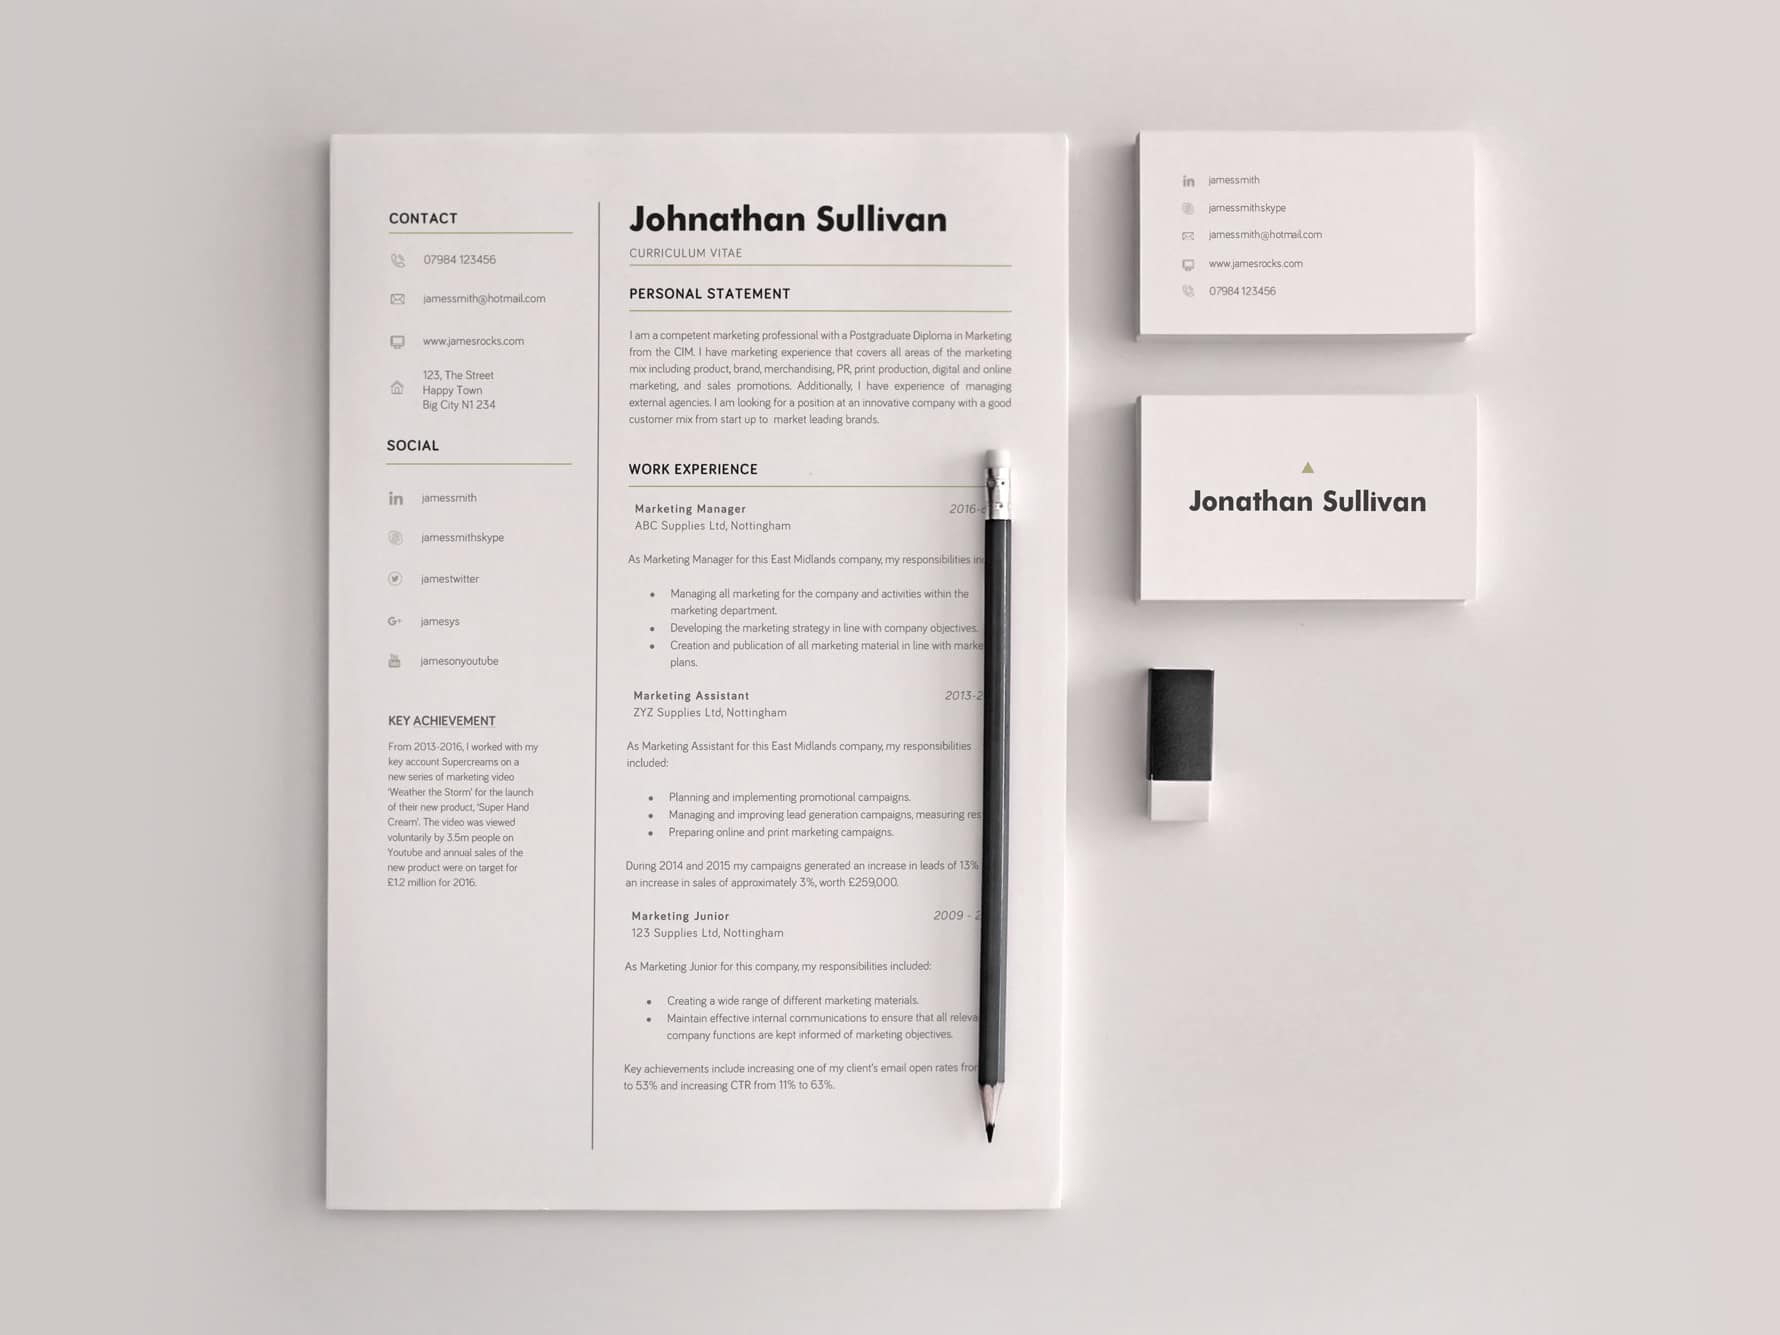 Example of a cover letter and resume by Giallo